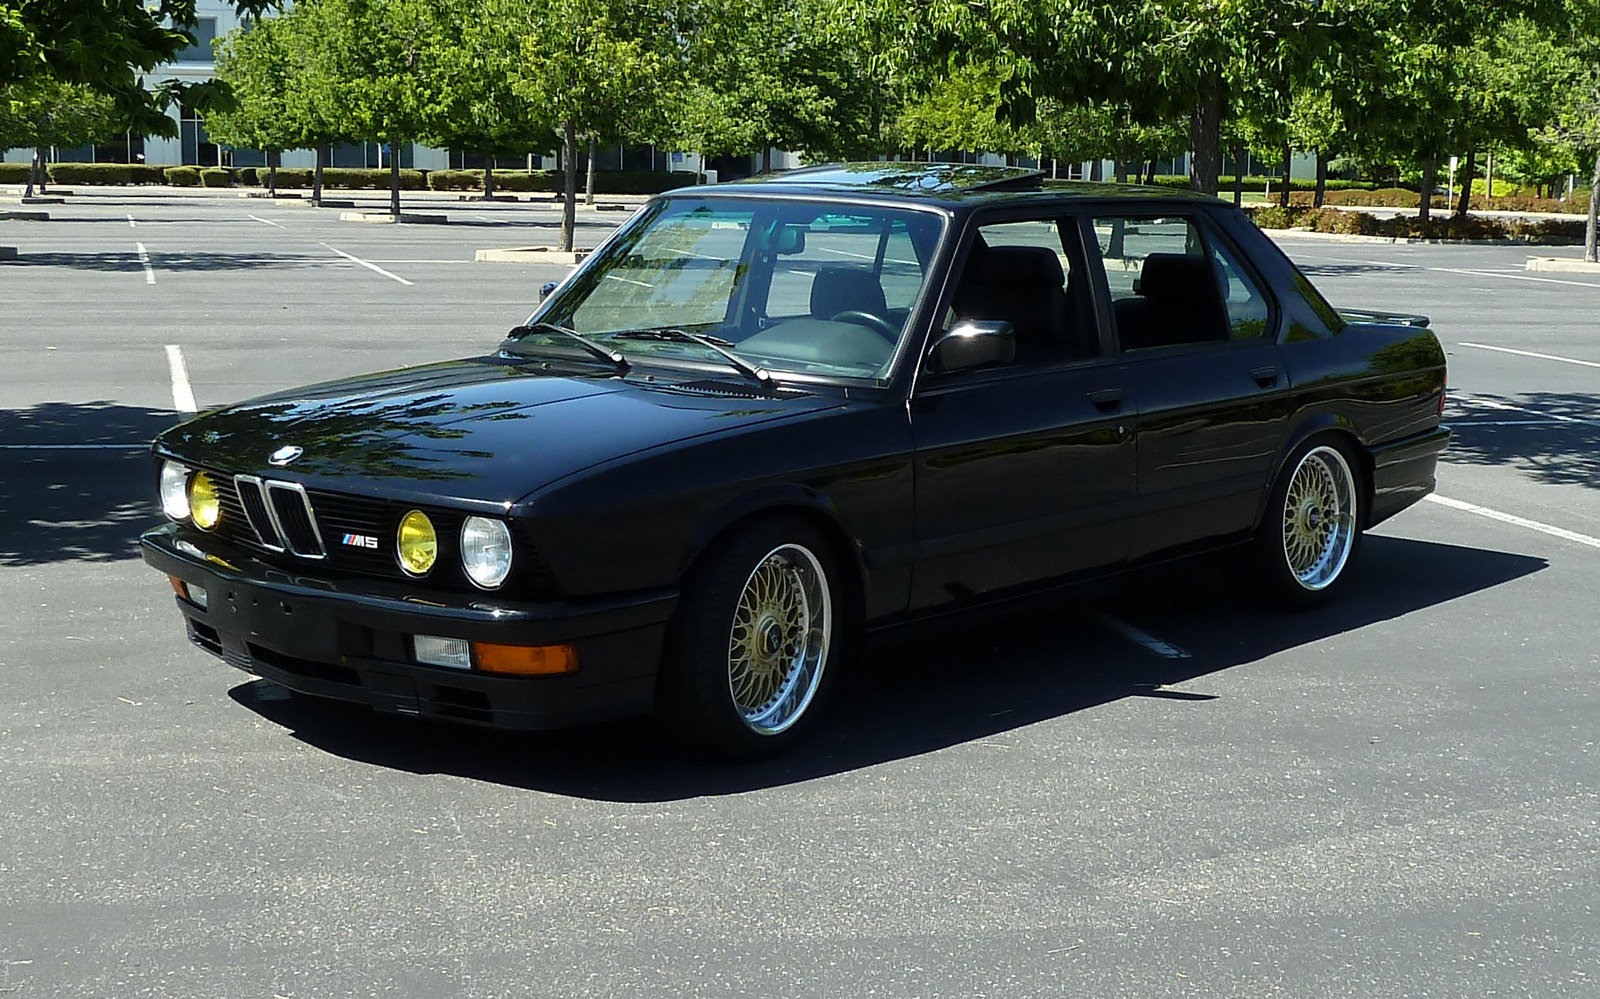 for sale 1988 bmw m5 with s54 engine swap picture. Black Bedroom Furniture Sets. Home Design Ideas